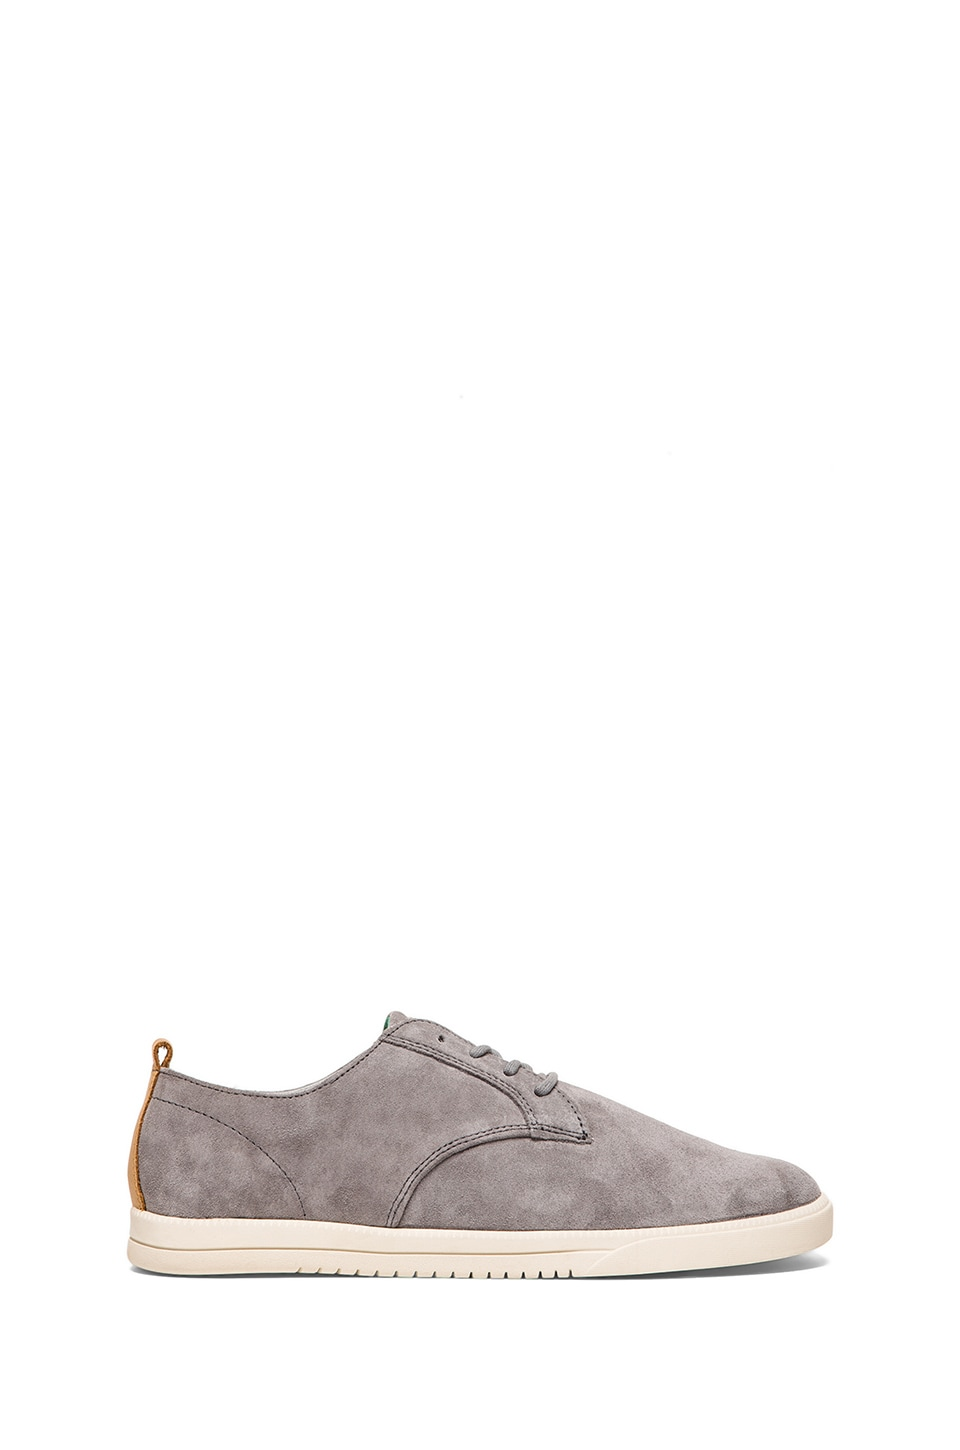 Clae Ellington Suede in Concrete